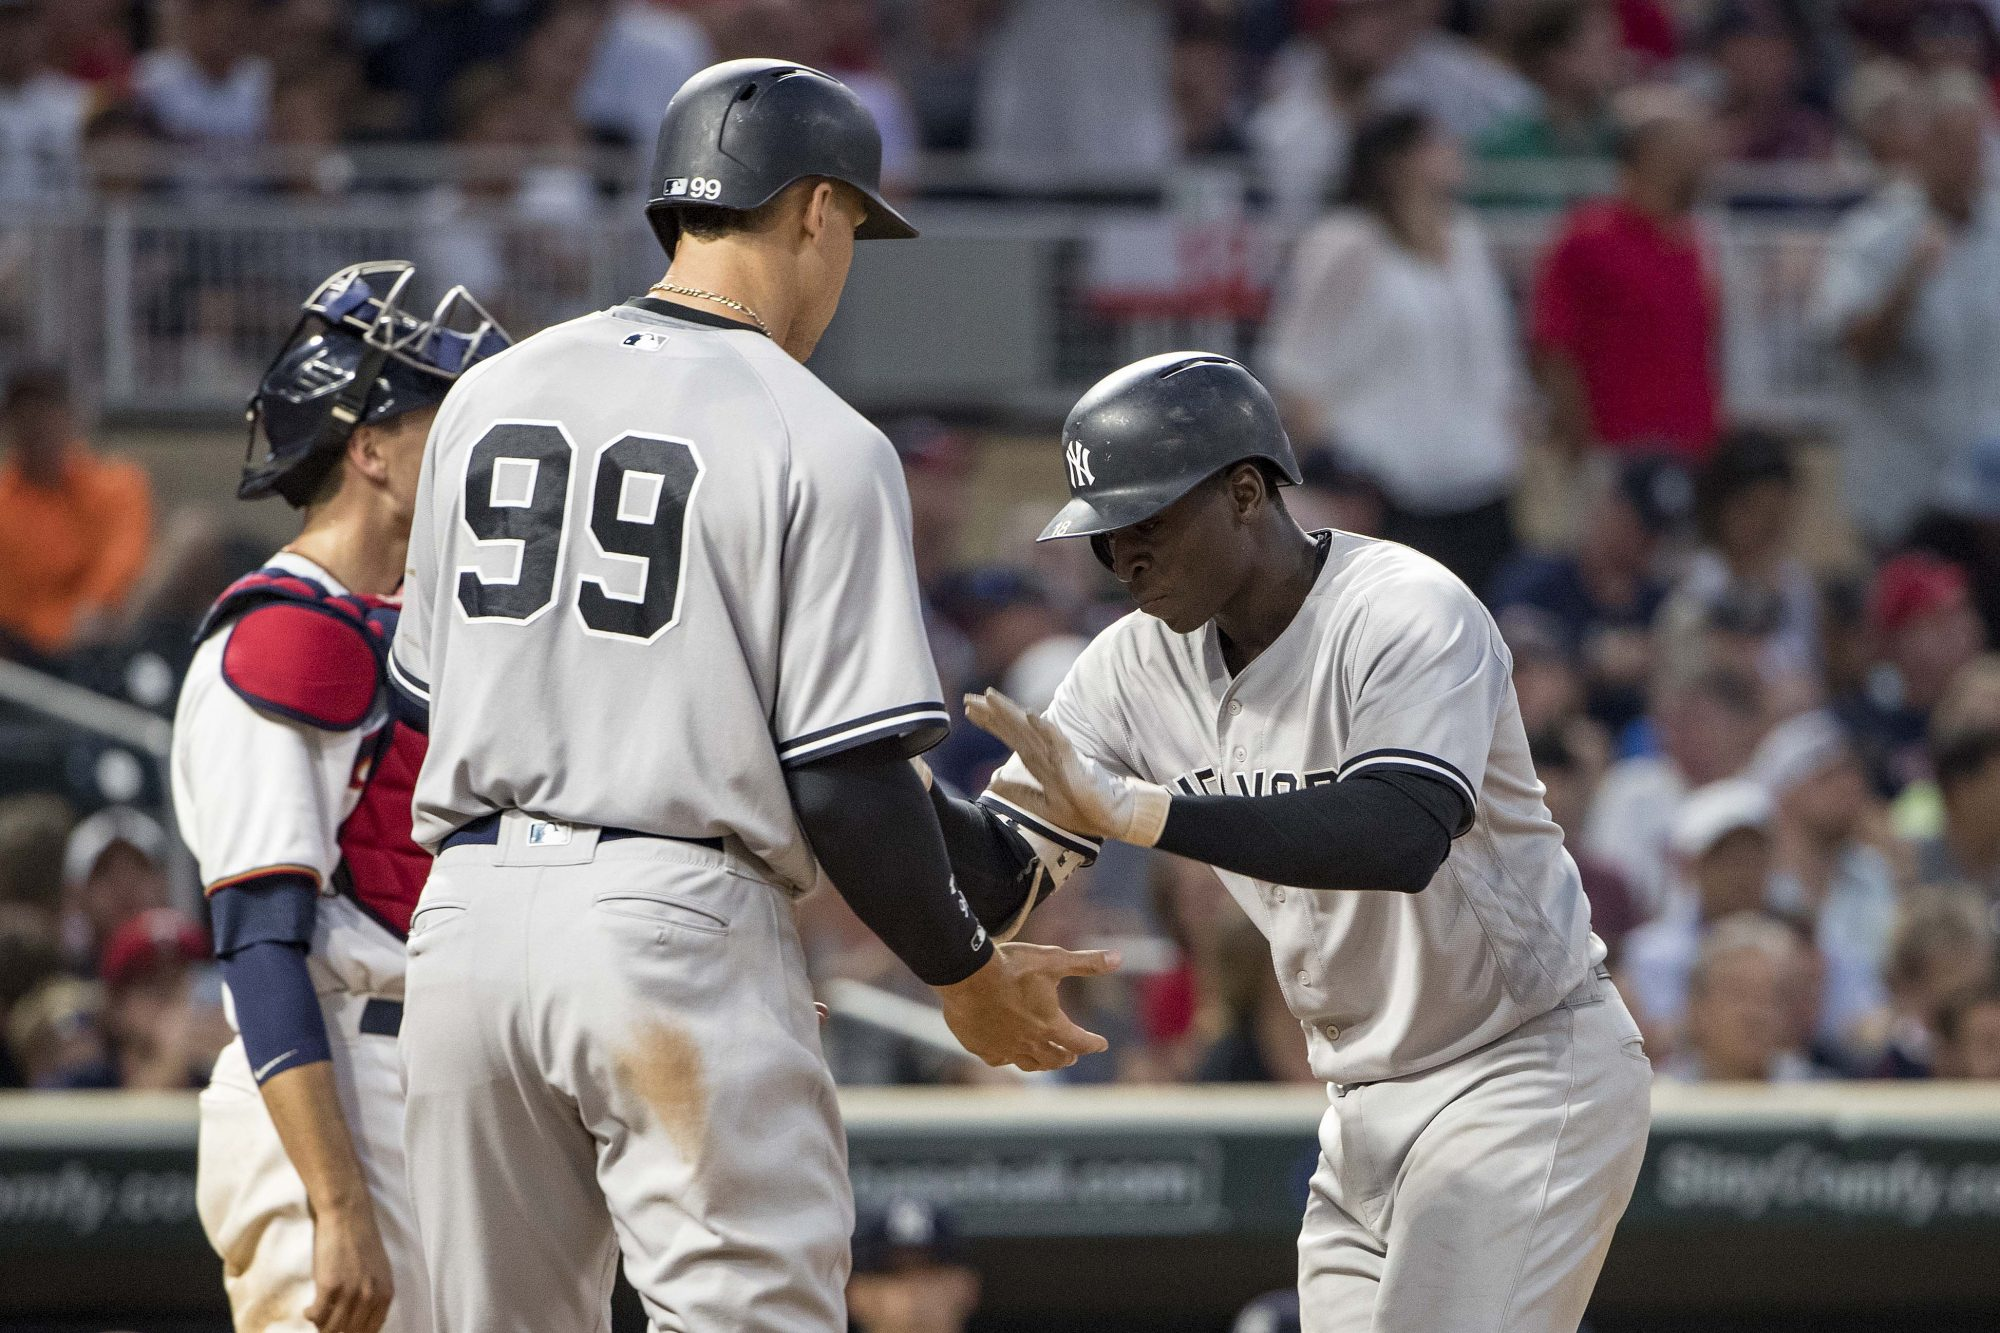 New York Yankees Use 5-Run Inning To Coast To Victory (Highlights)